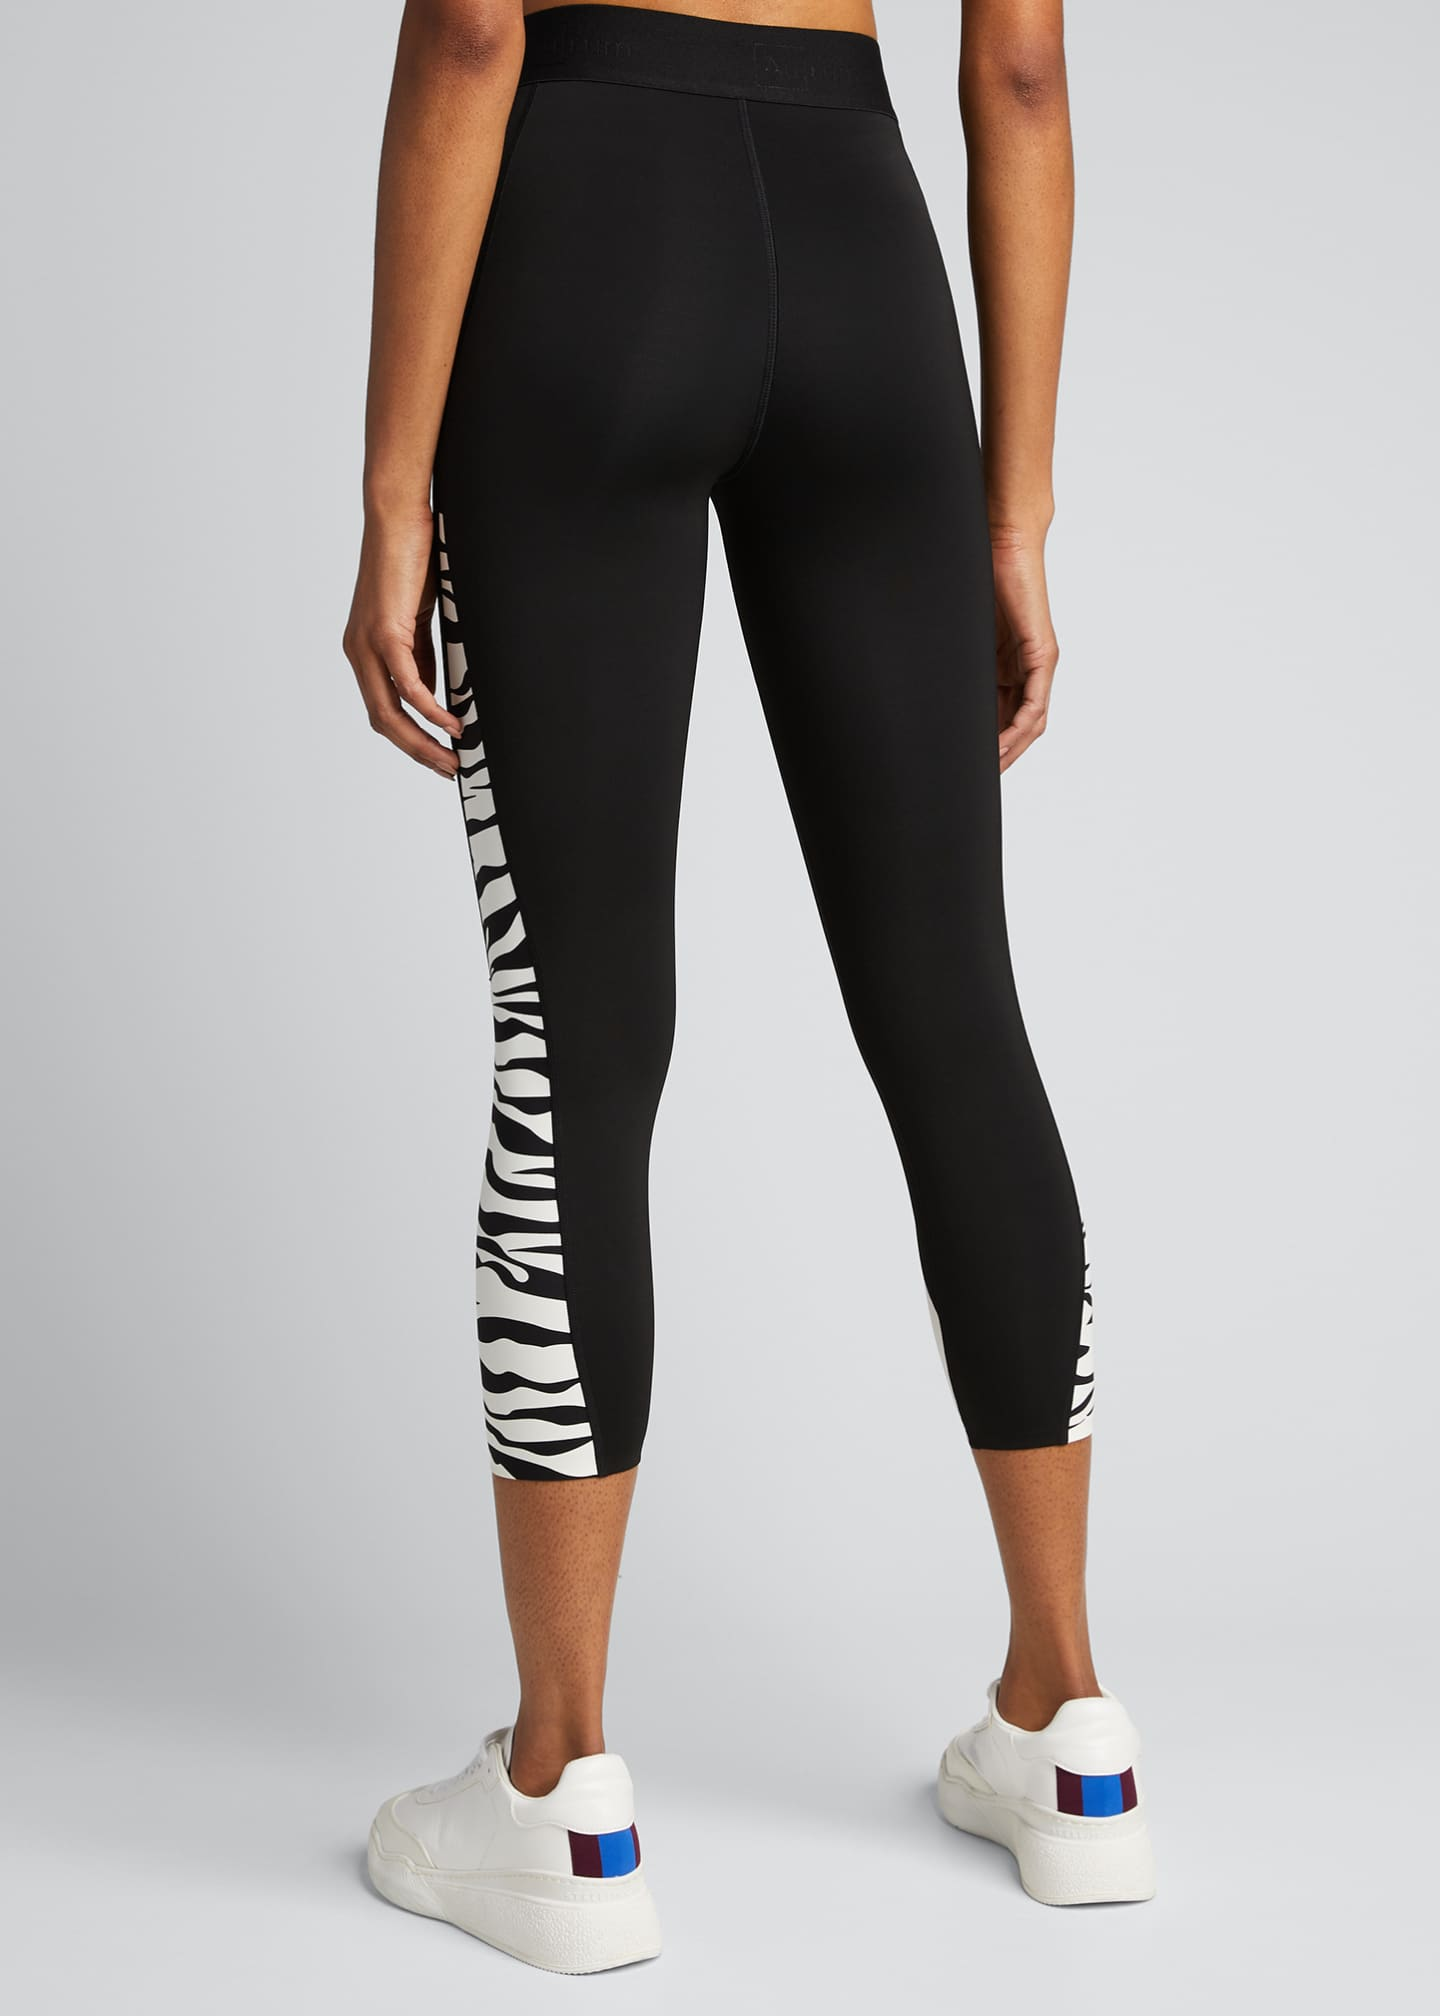 Image 2 of 5: Fearless Zebra Active Leggings